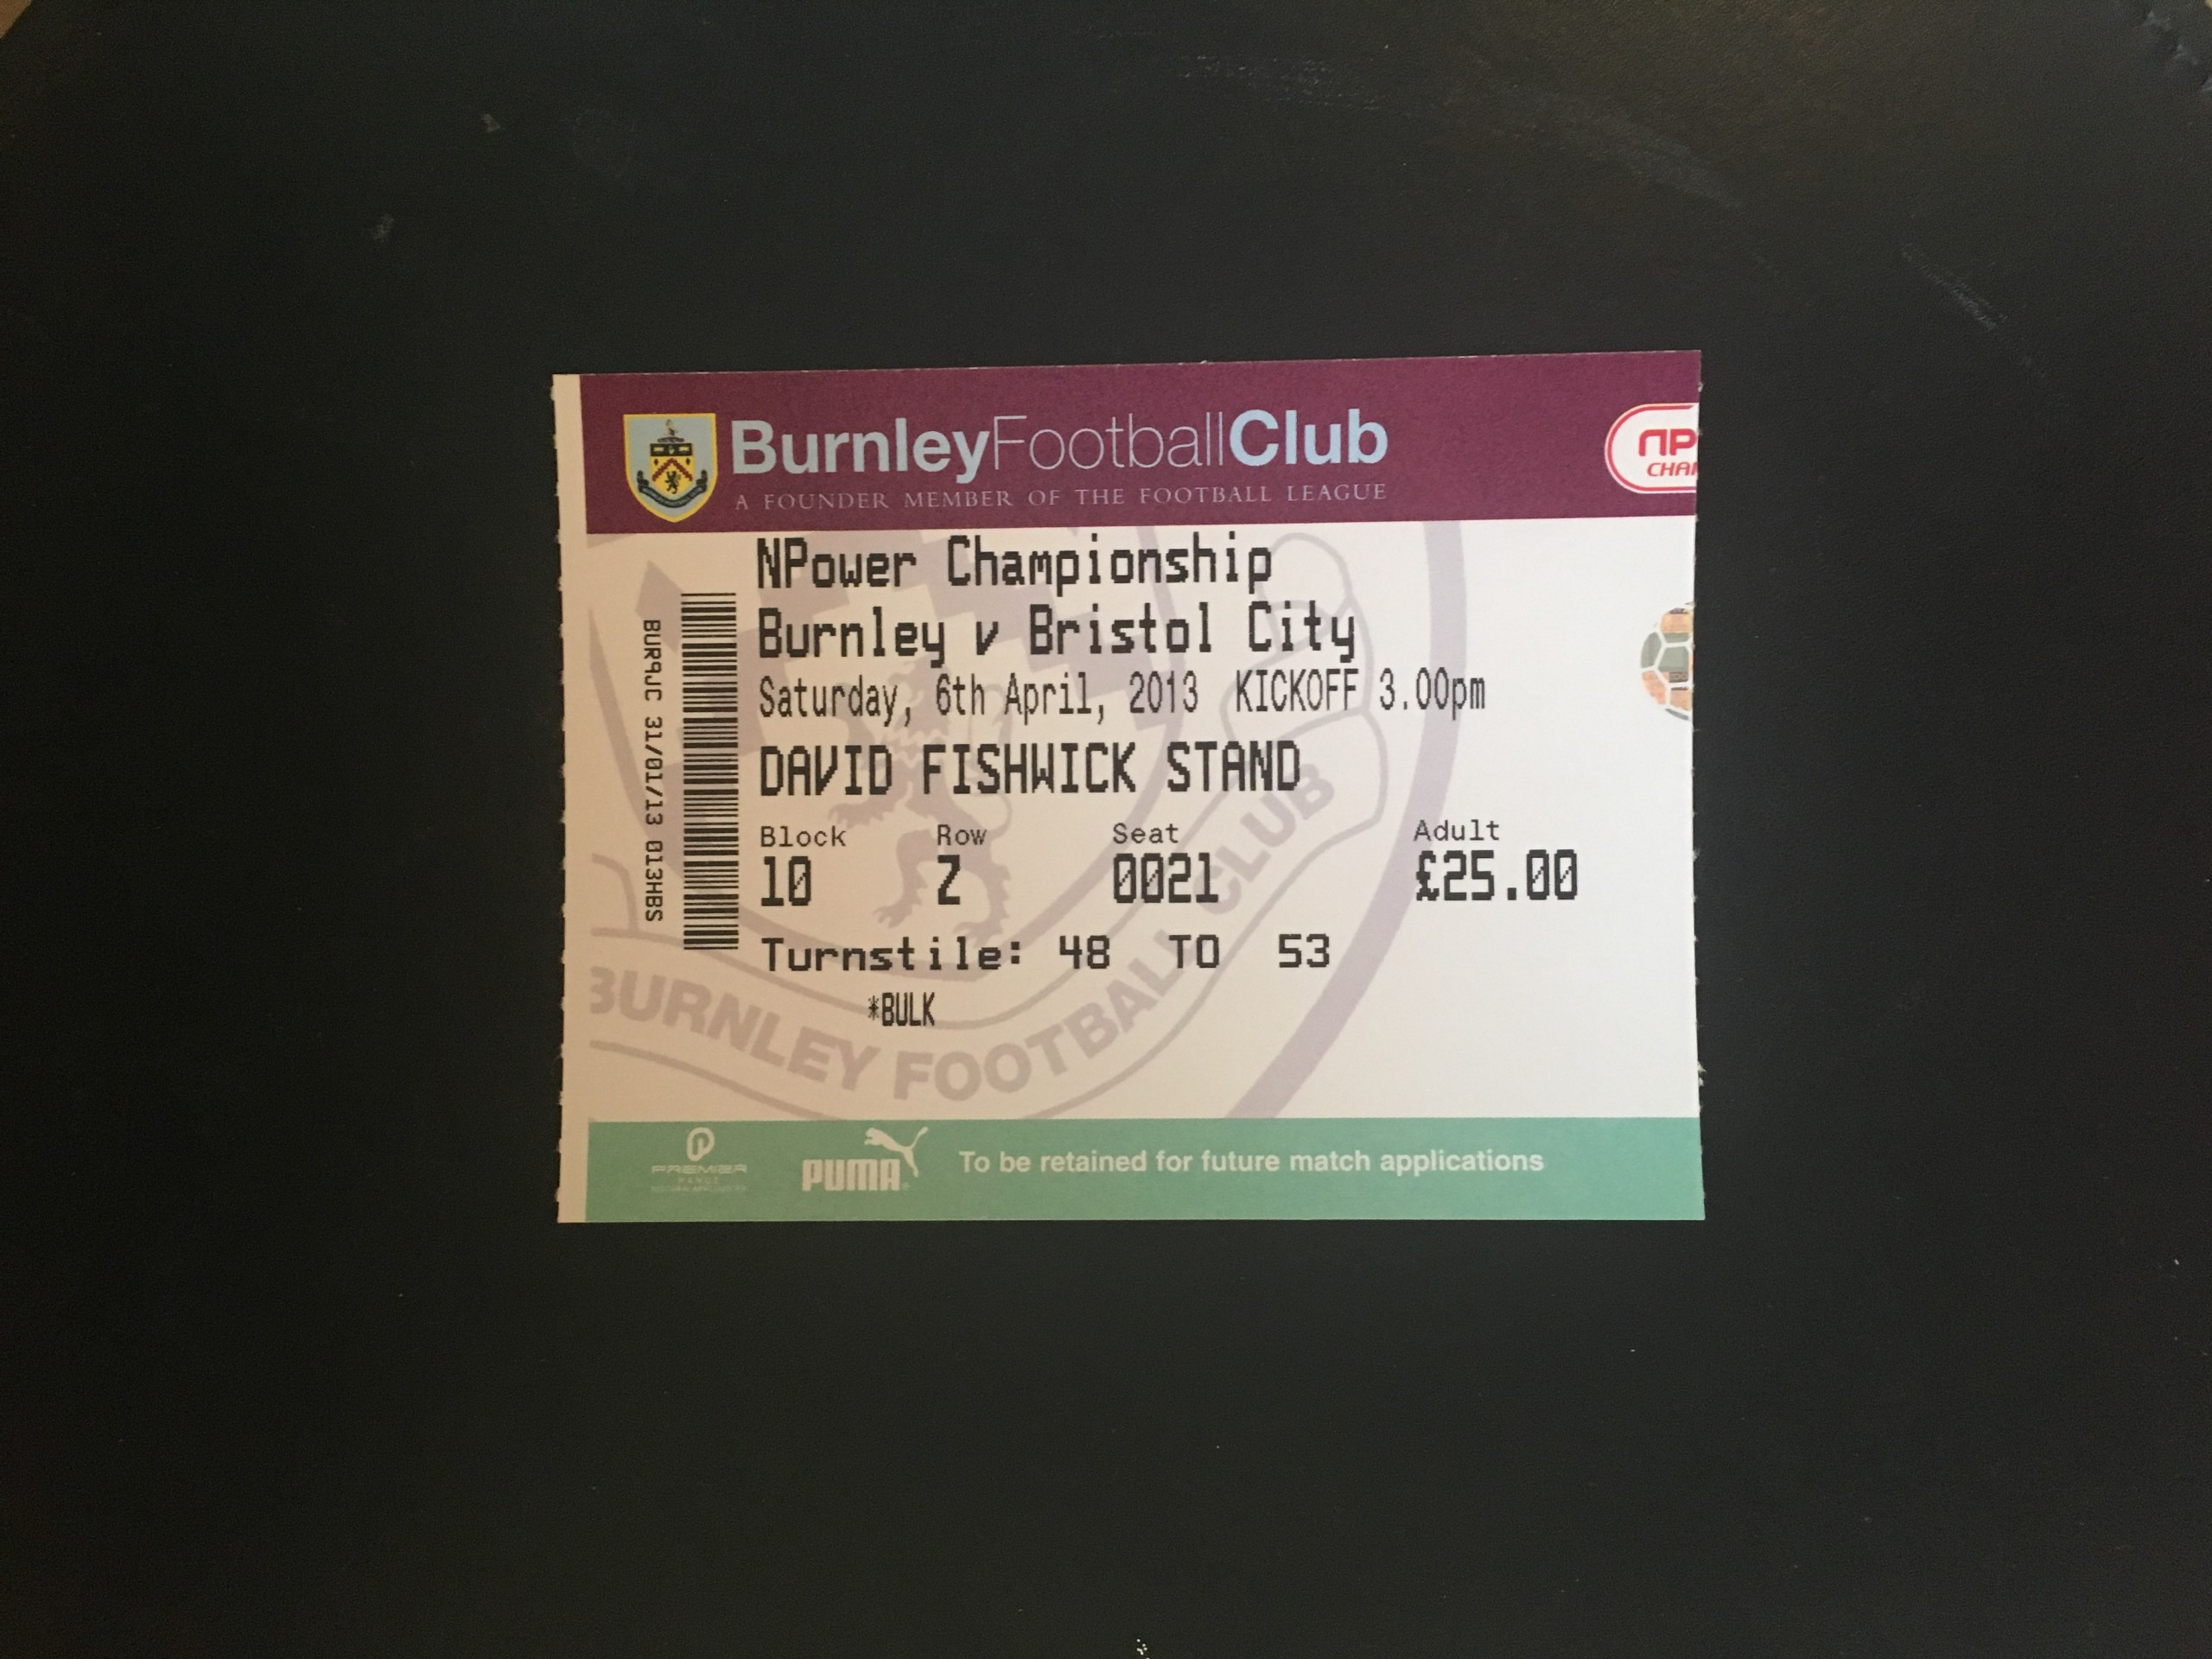 Burnley v Bristol City 06-04-13 Ticket